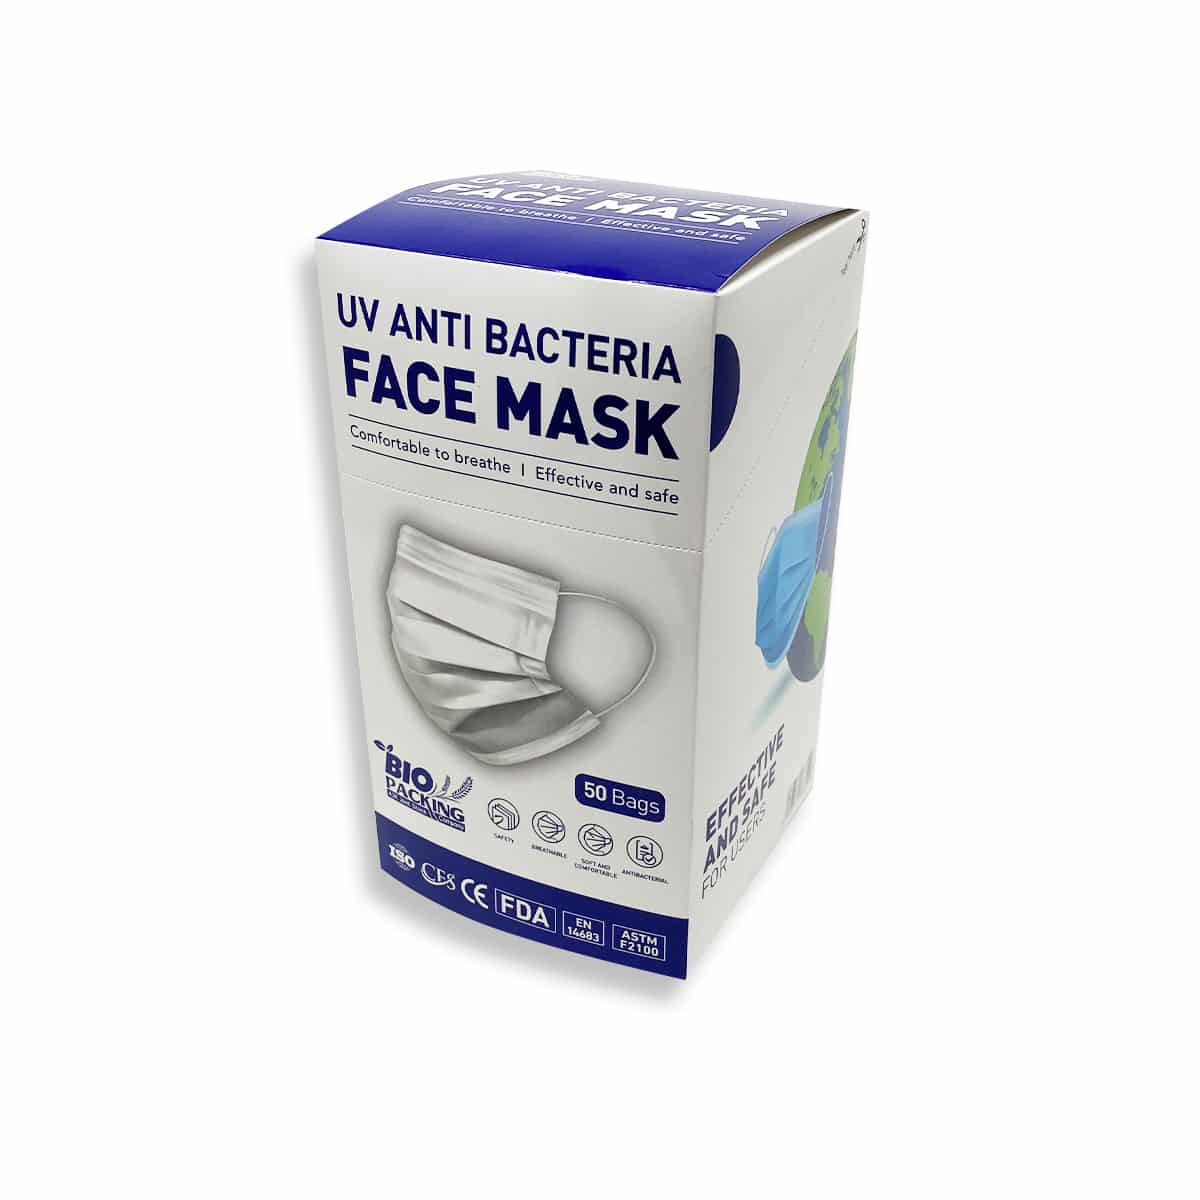 [Mask] Bright White Masks 4-Ply - Individually Wrapped -BioPacking 6